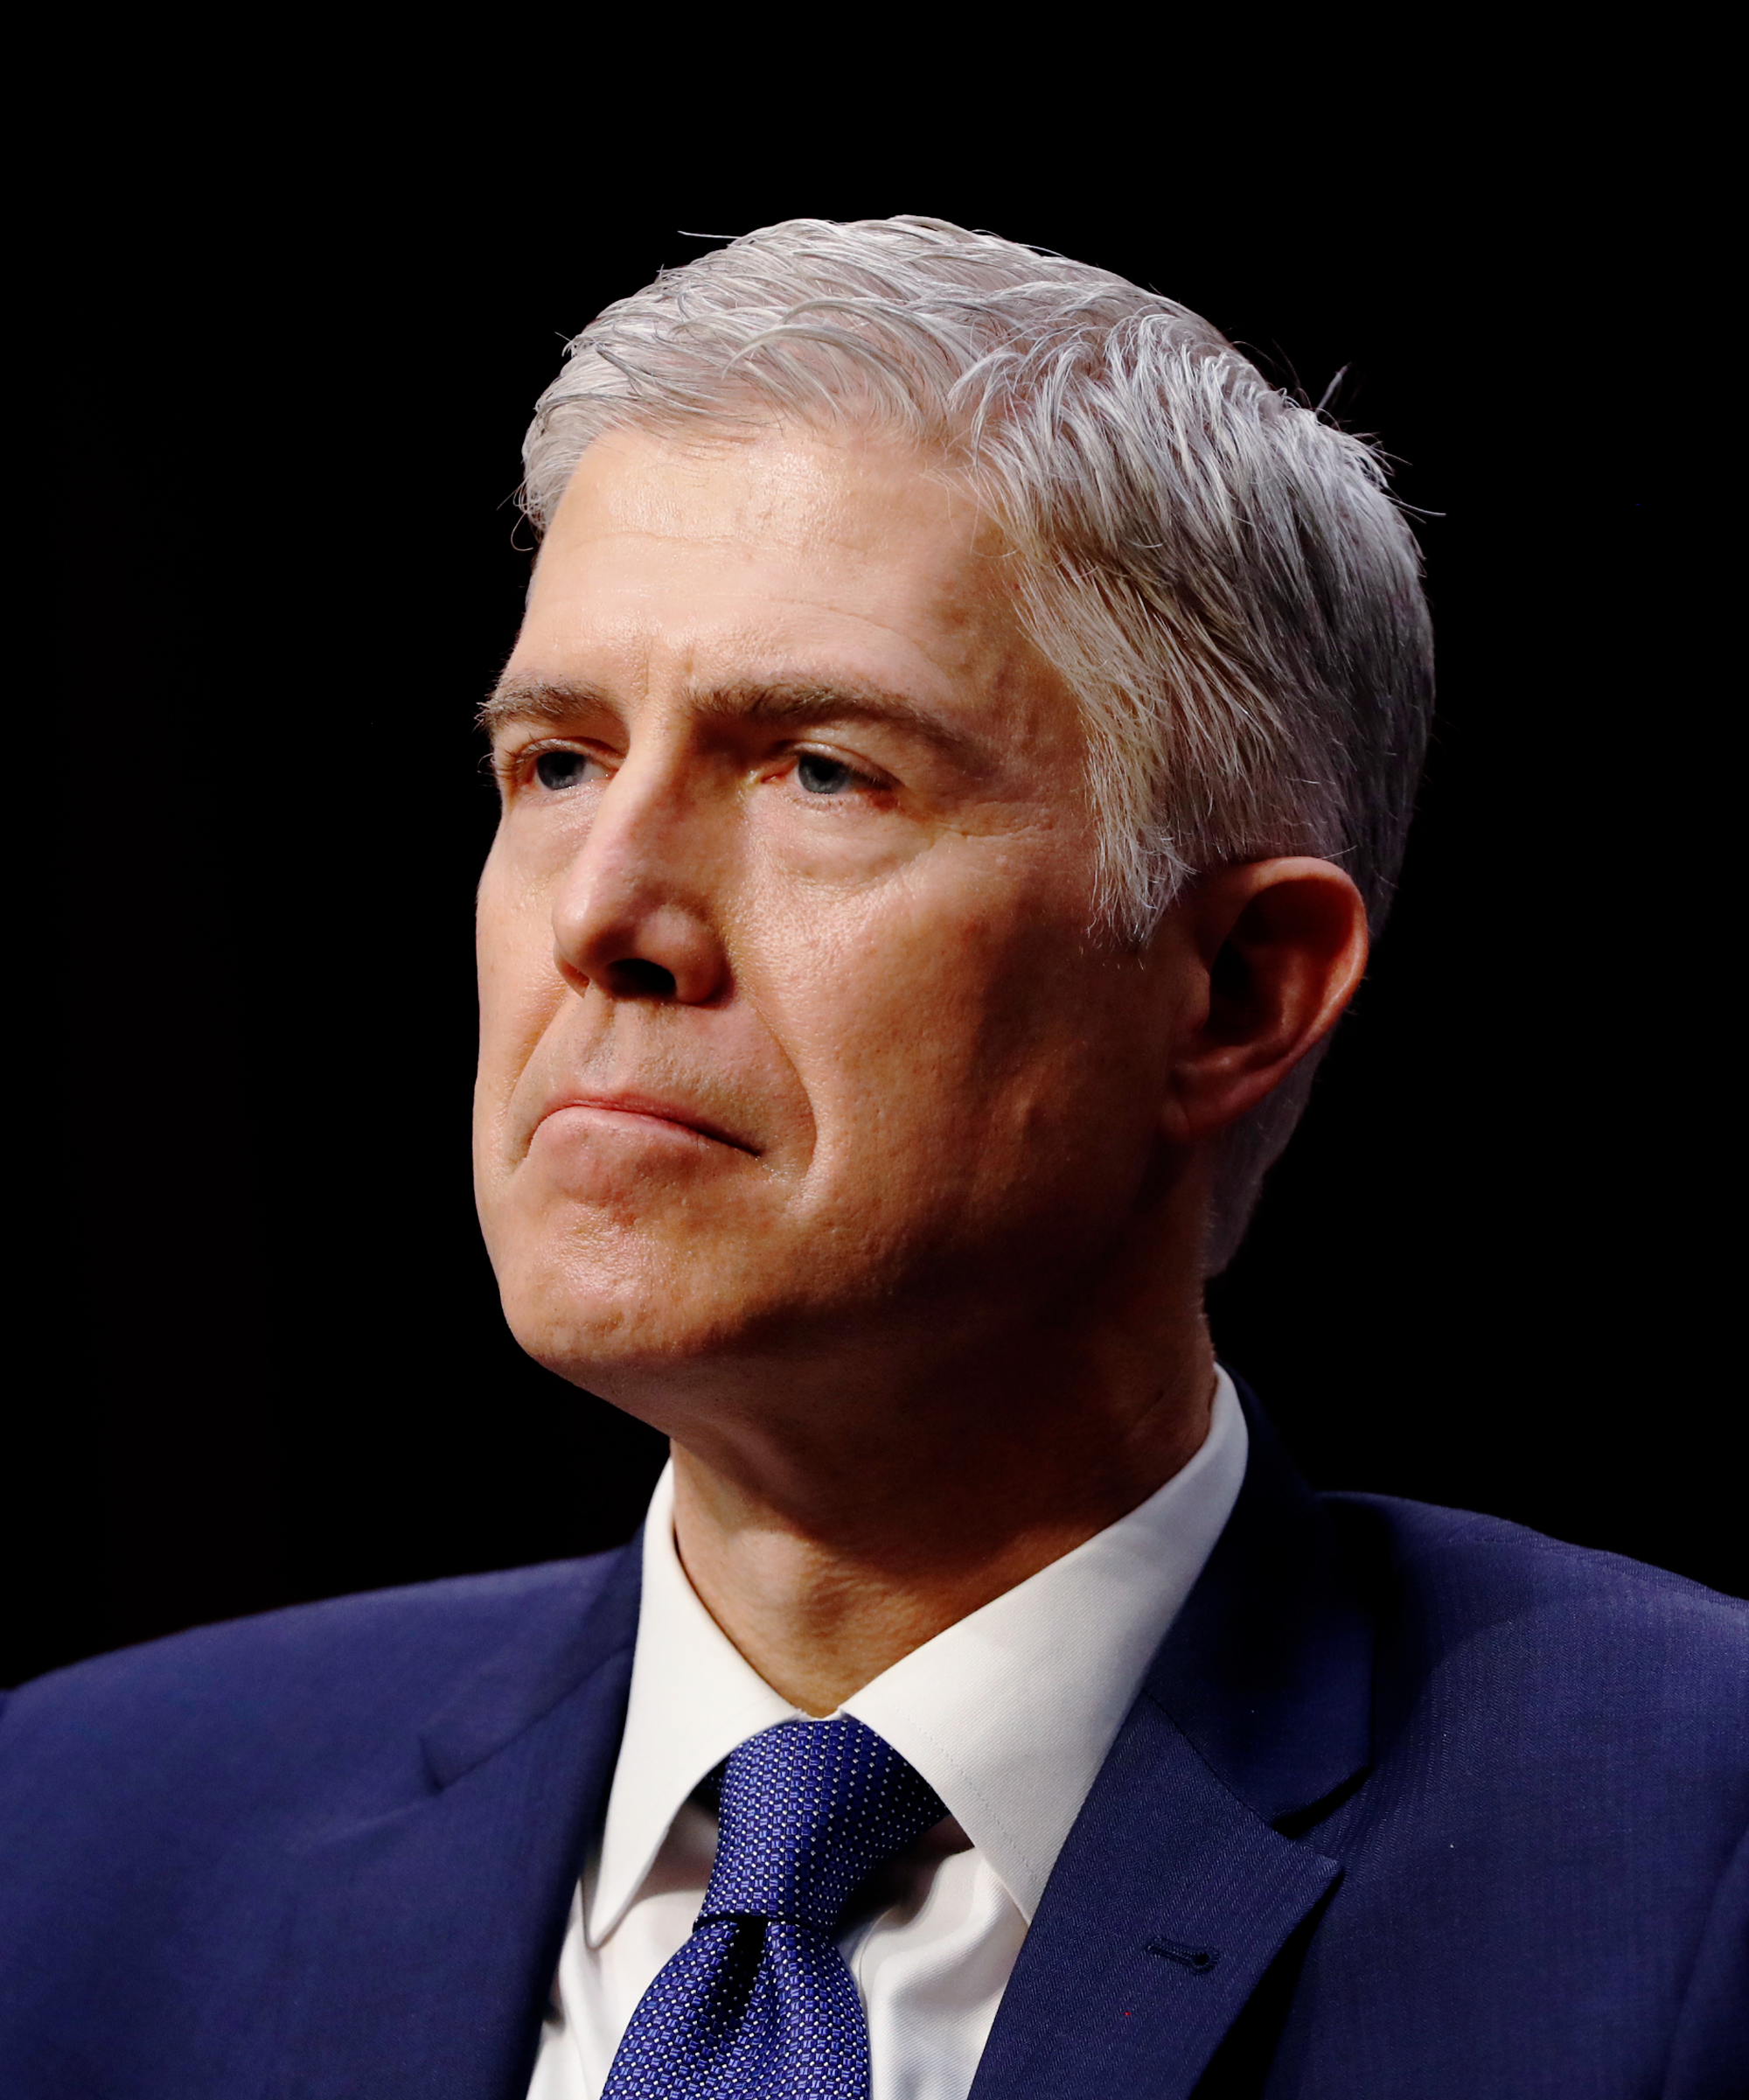 Senate tears up vote rules to confirm Gorsuch to Supreme Court